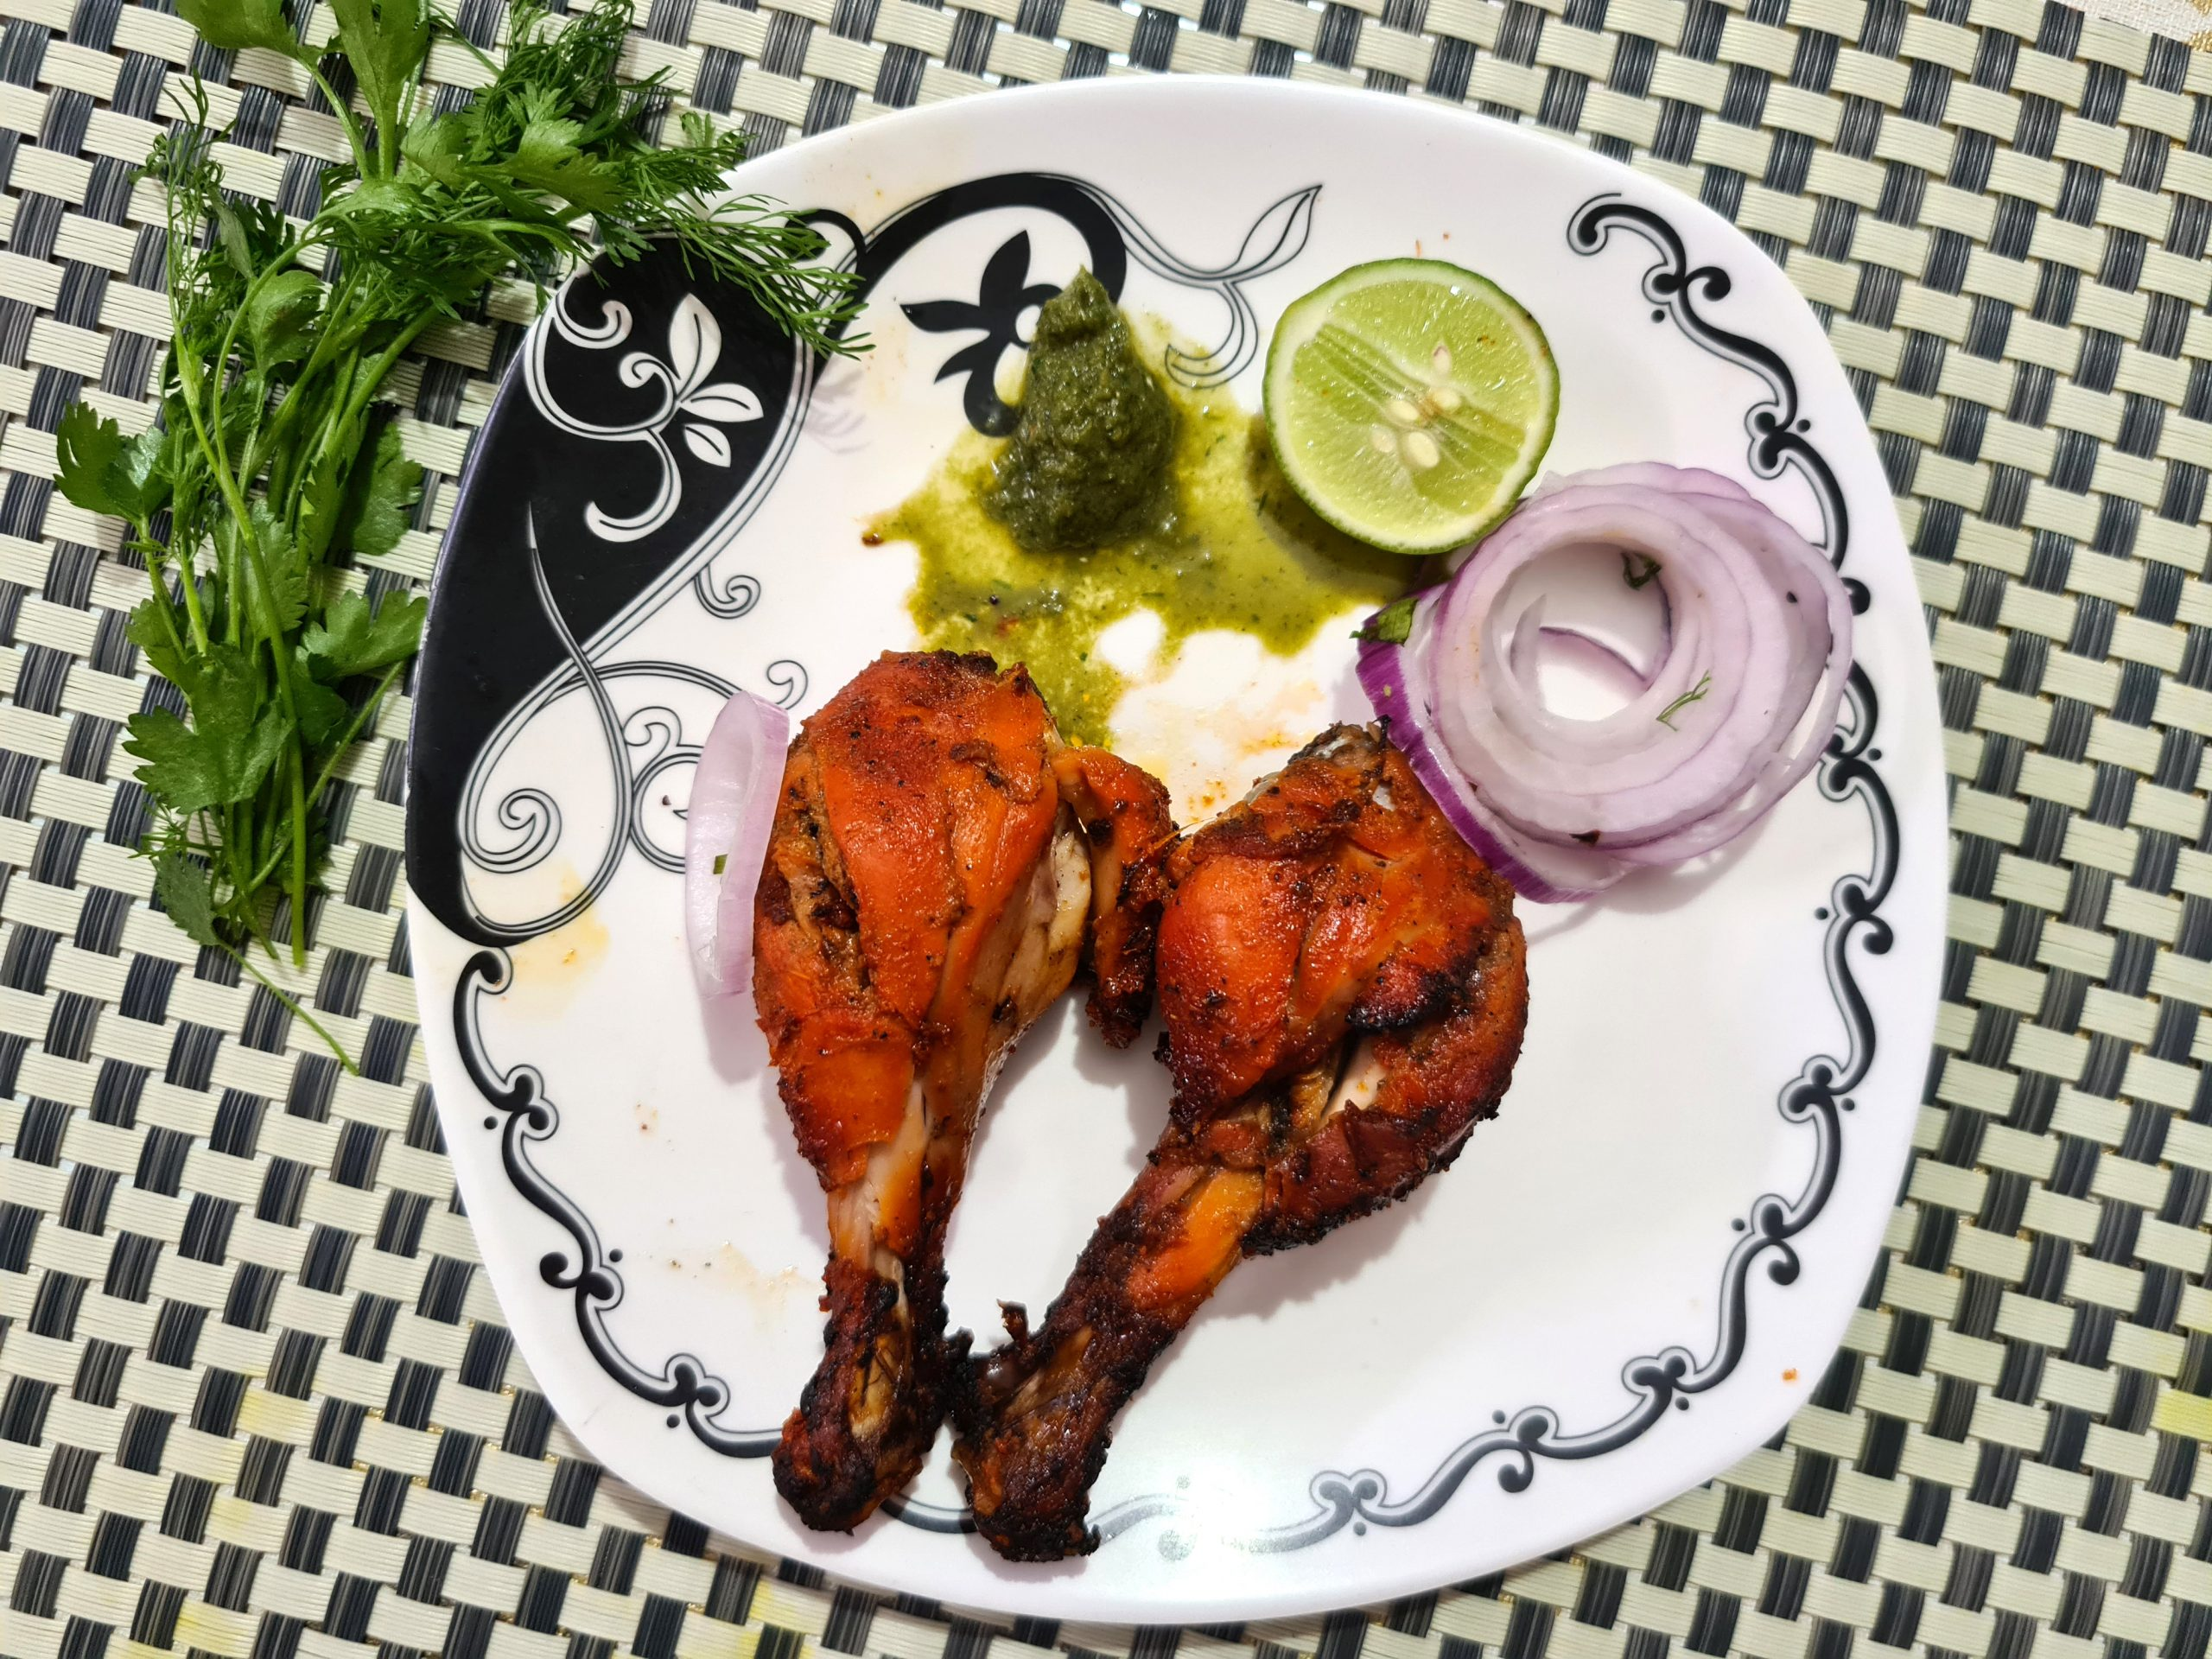 Tandoori Chicken dish in the plate